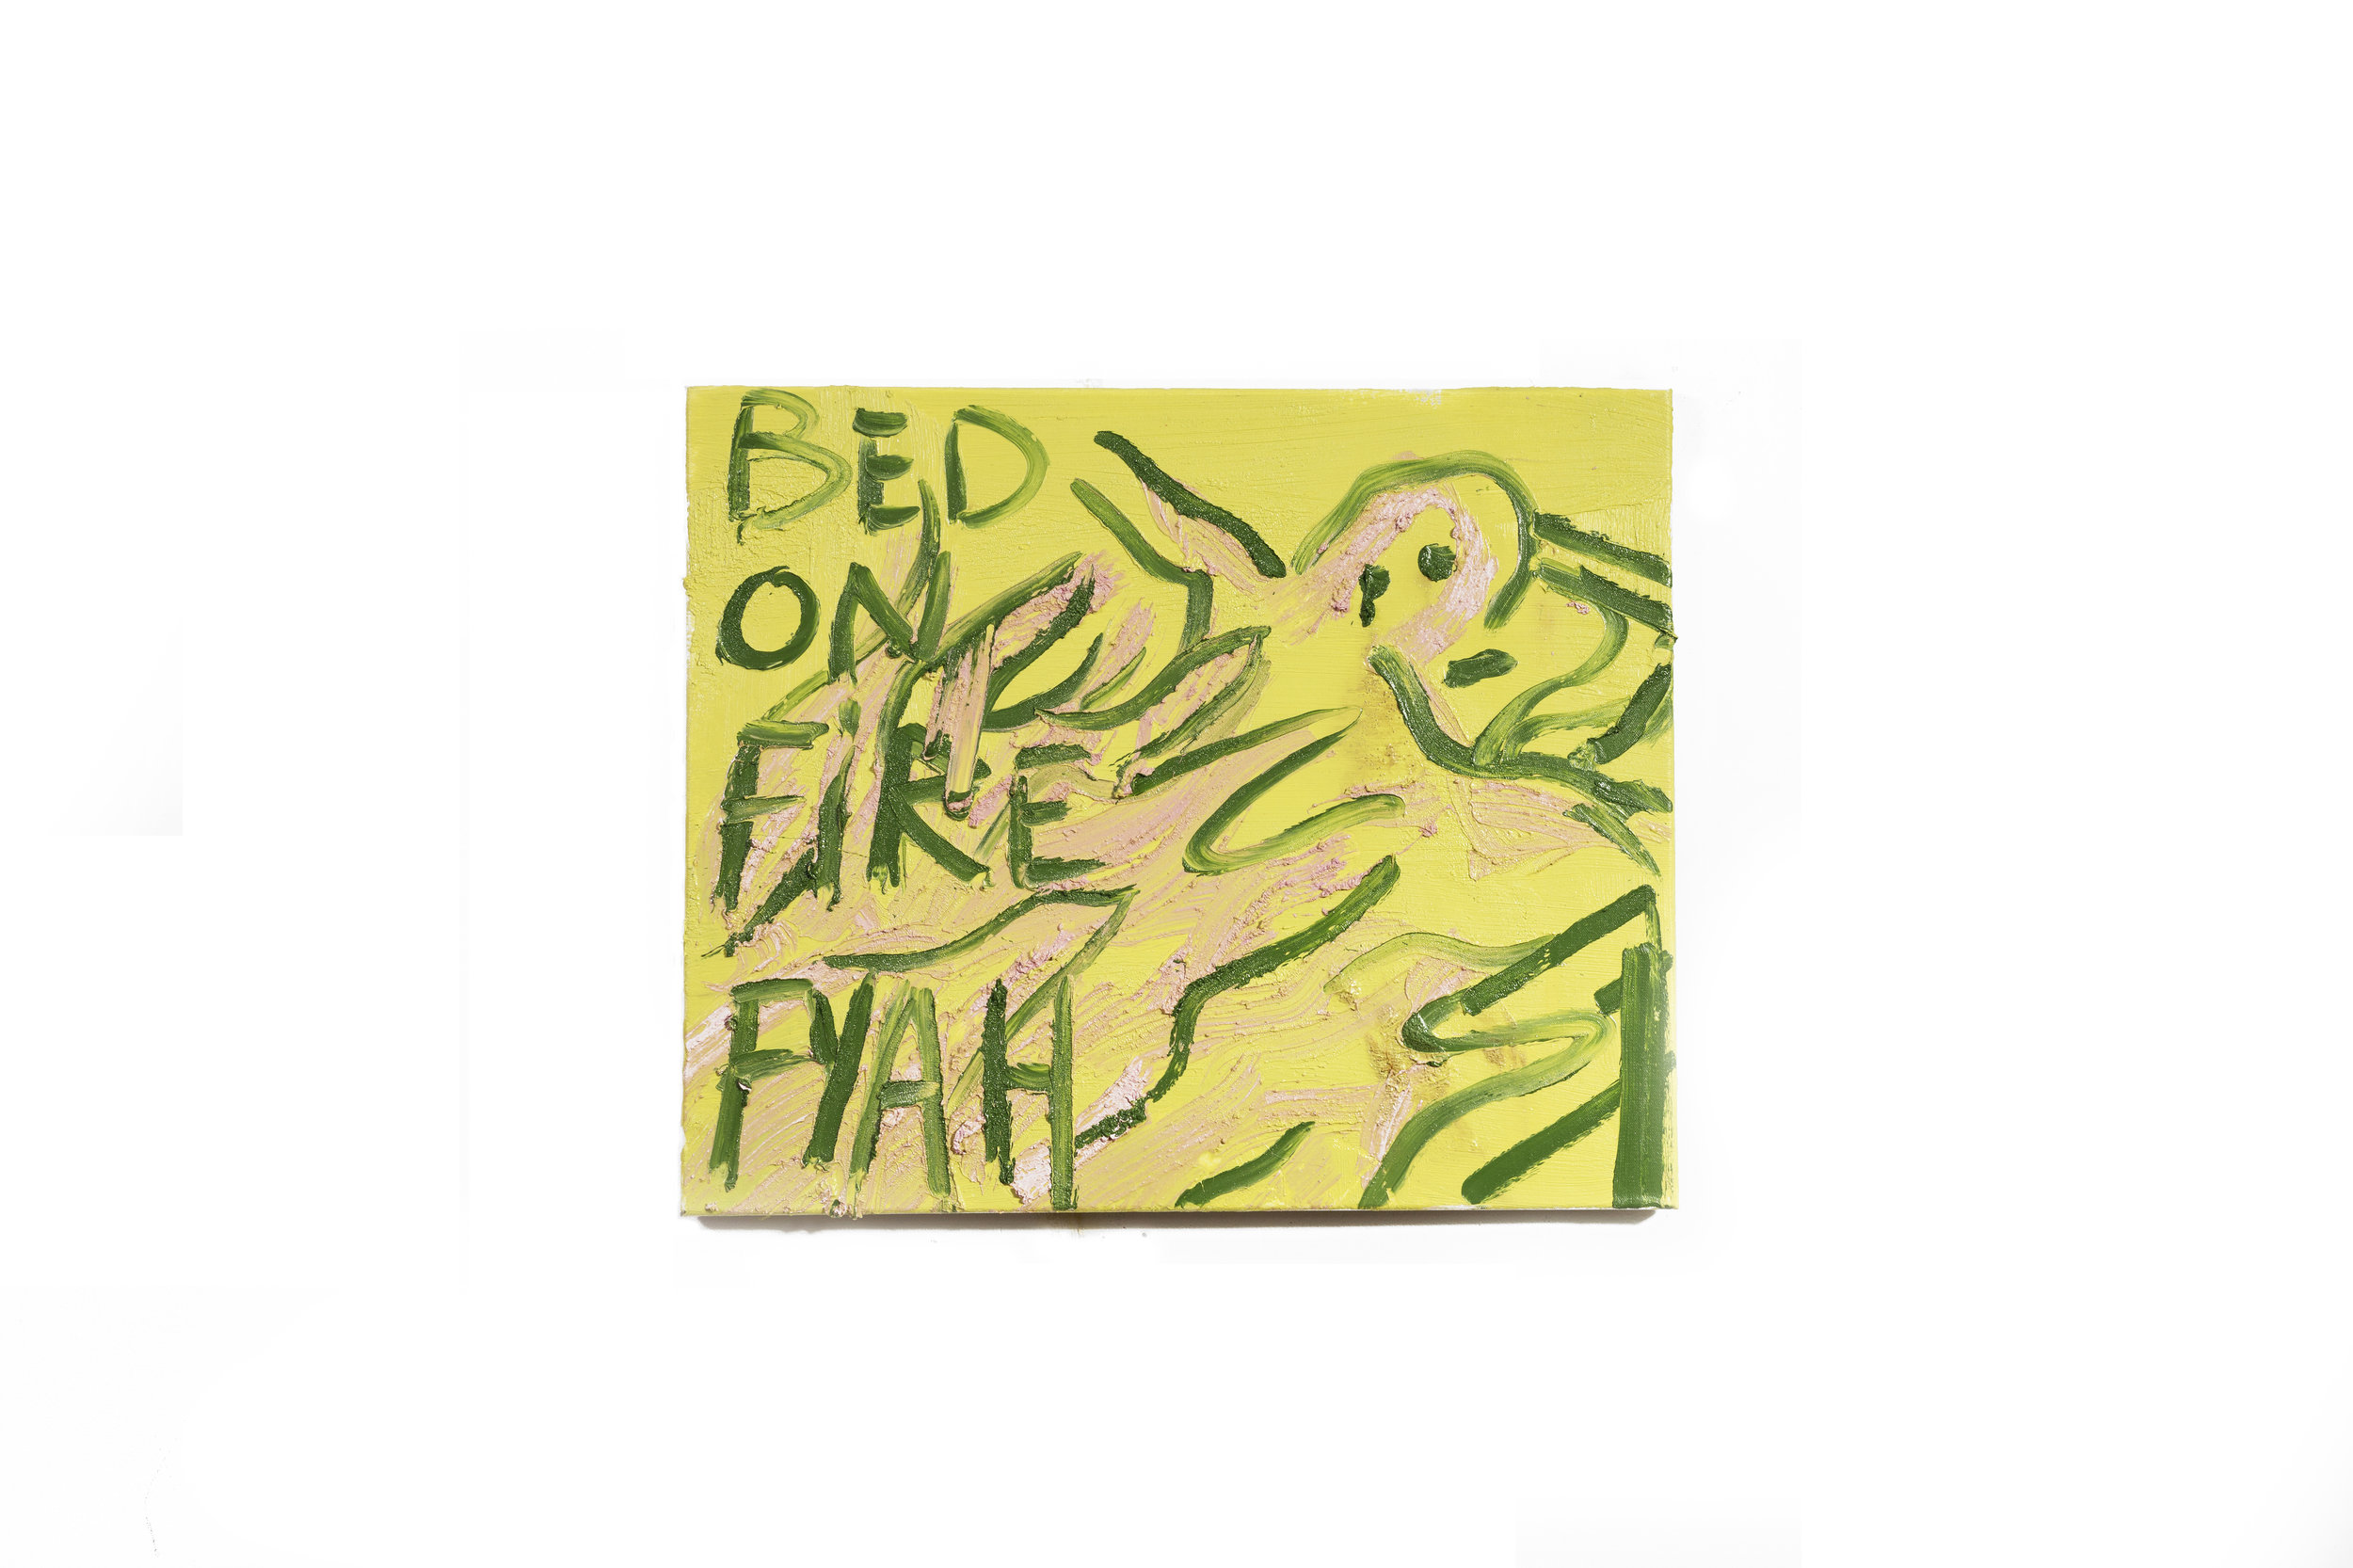 BED ON FIRE FYAH, 2018